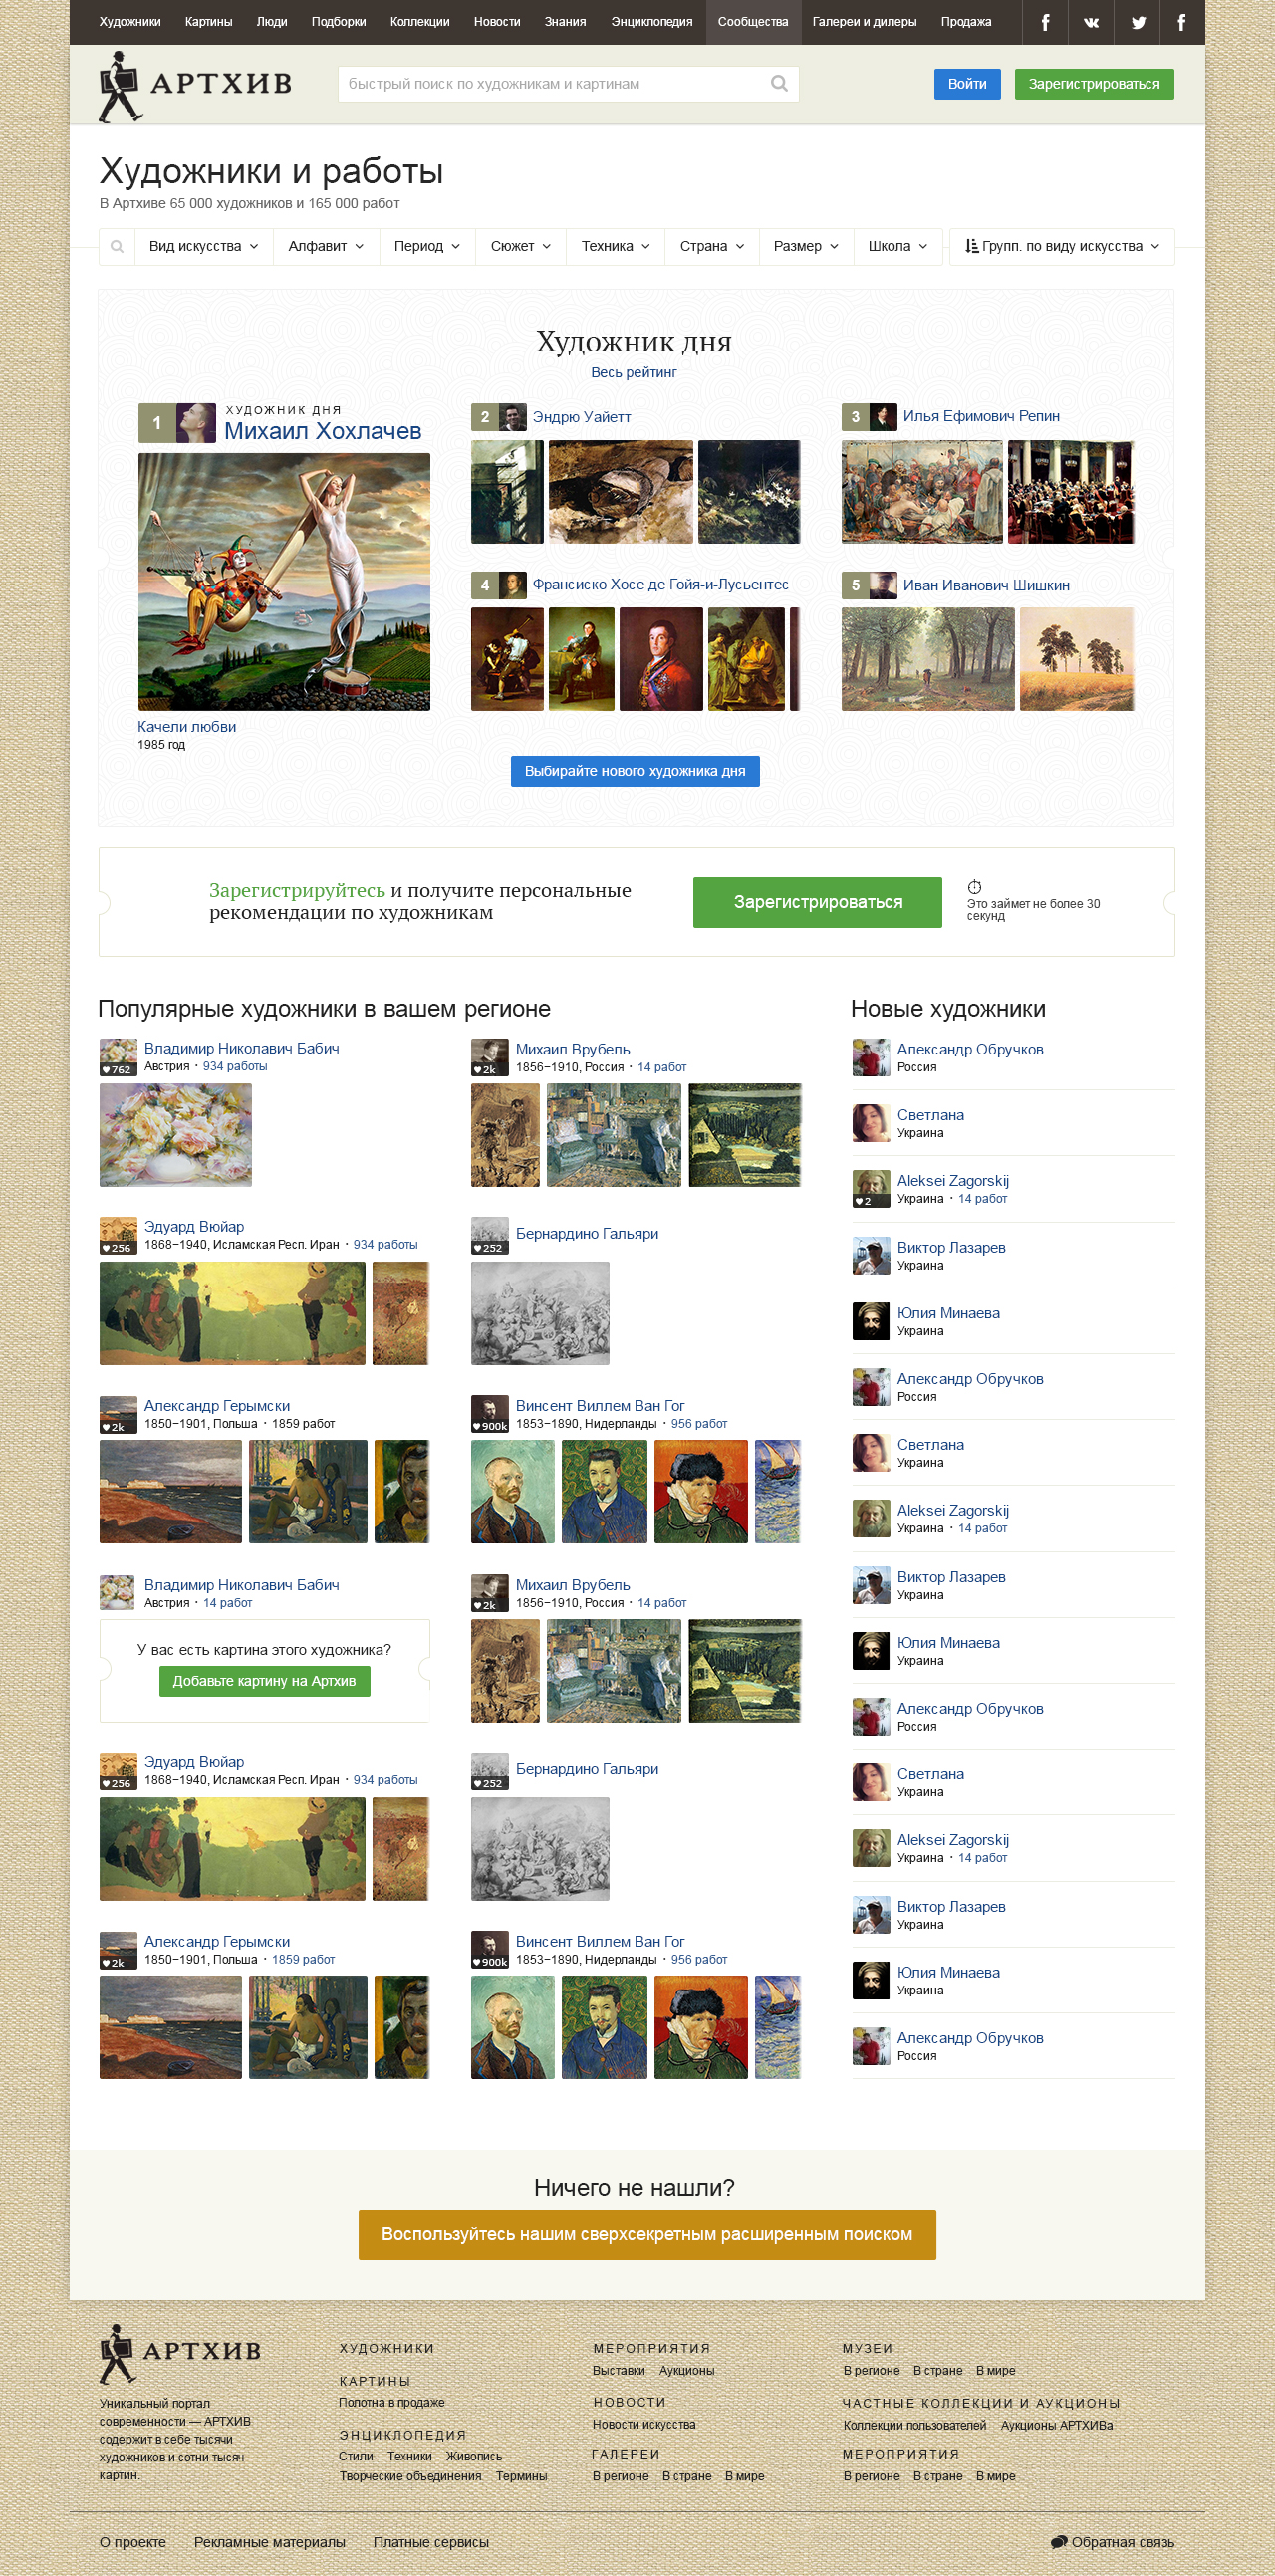 artists_and_works_enter_page